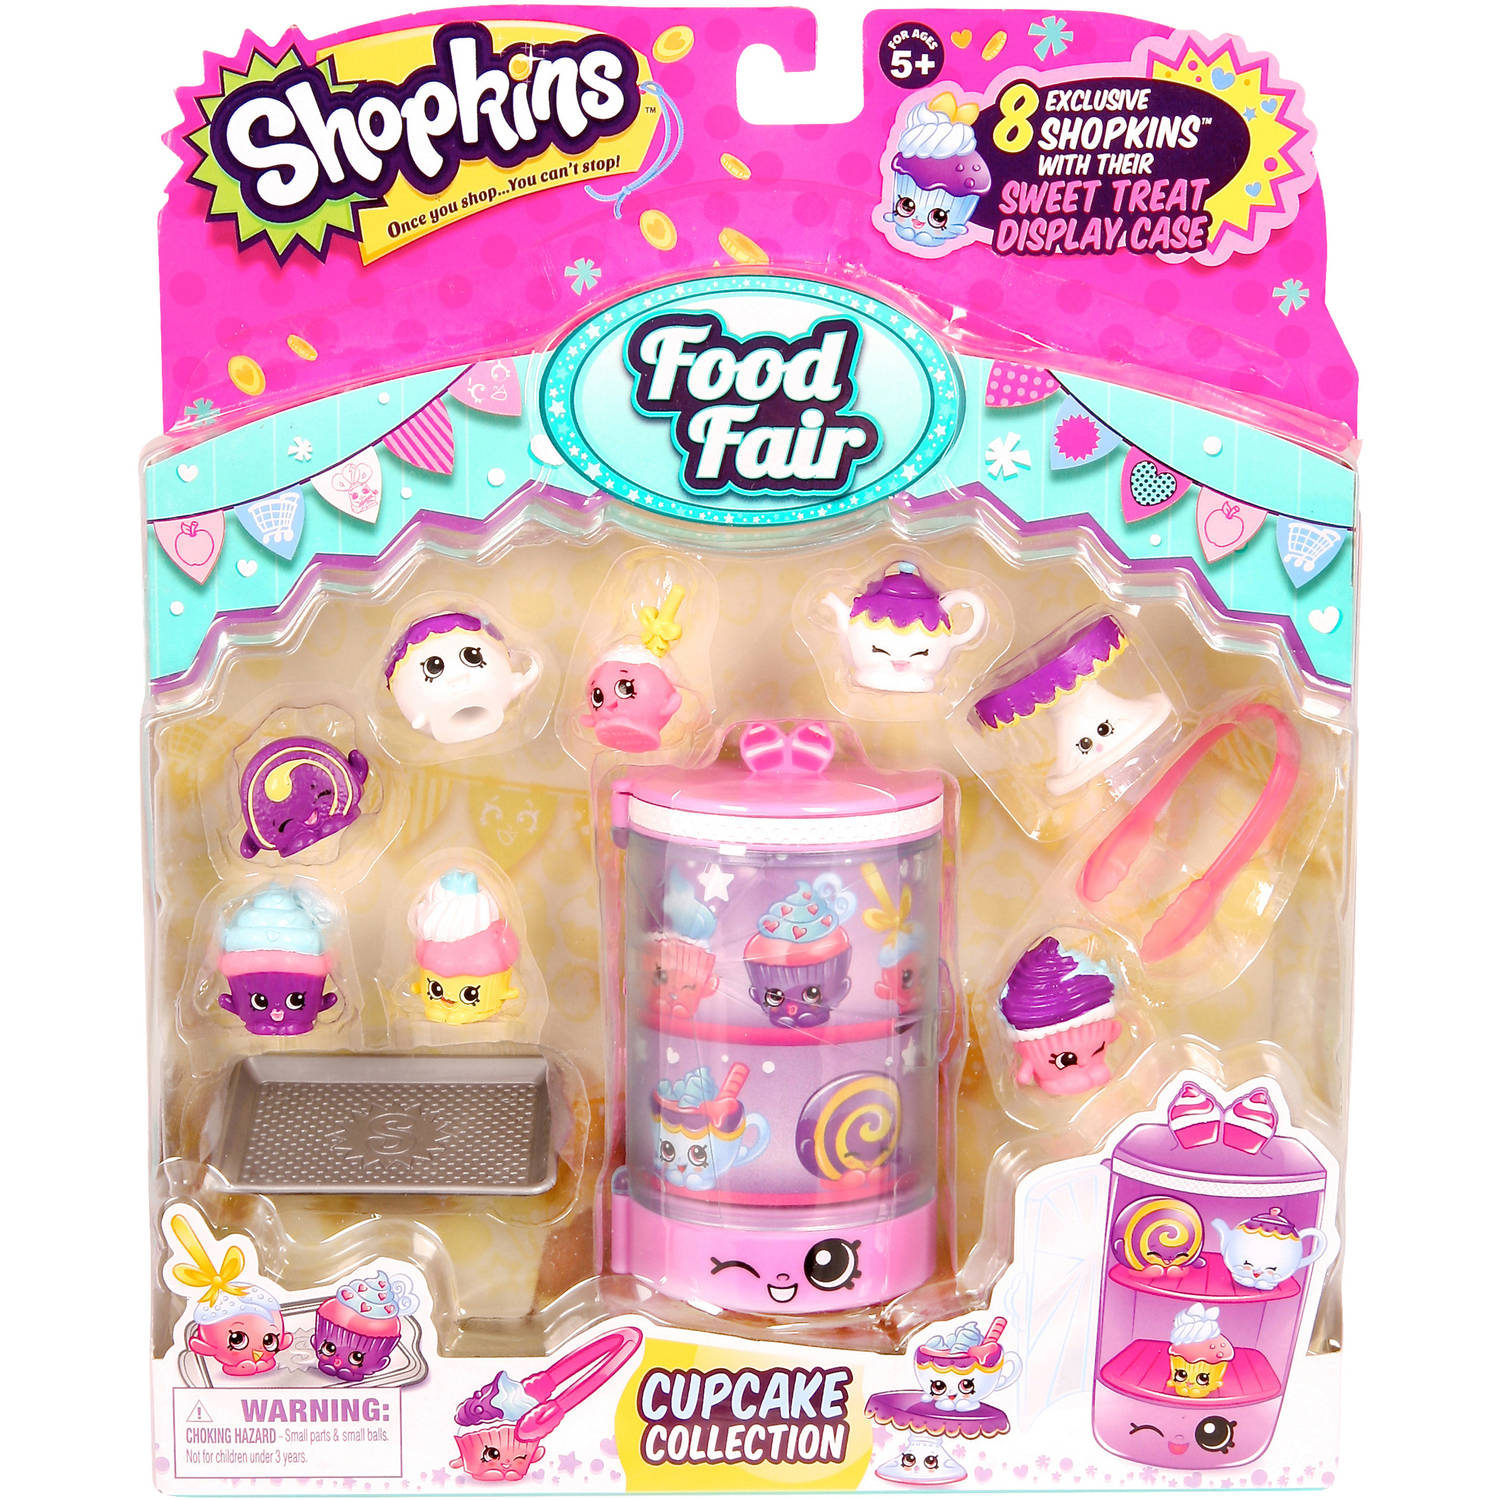 Moose Toys Shopkins Season 3 Food Fair Themed Packs Cupcake Collection